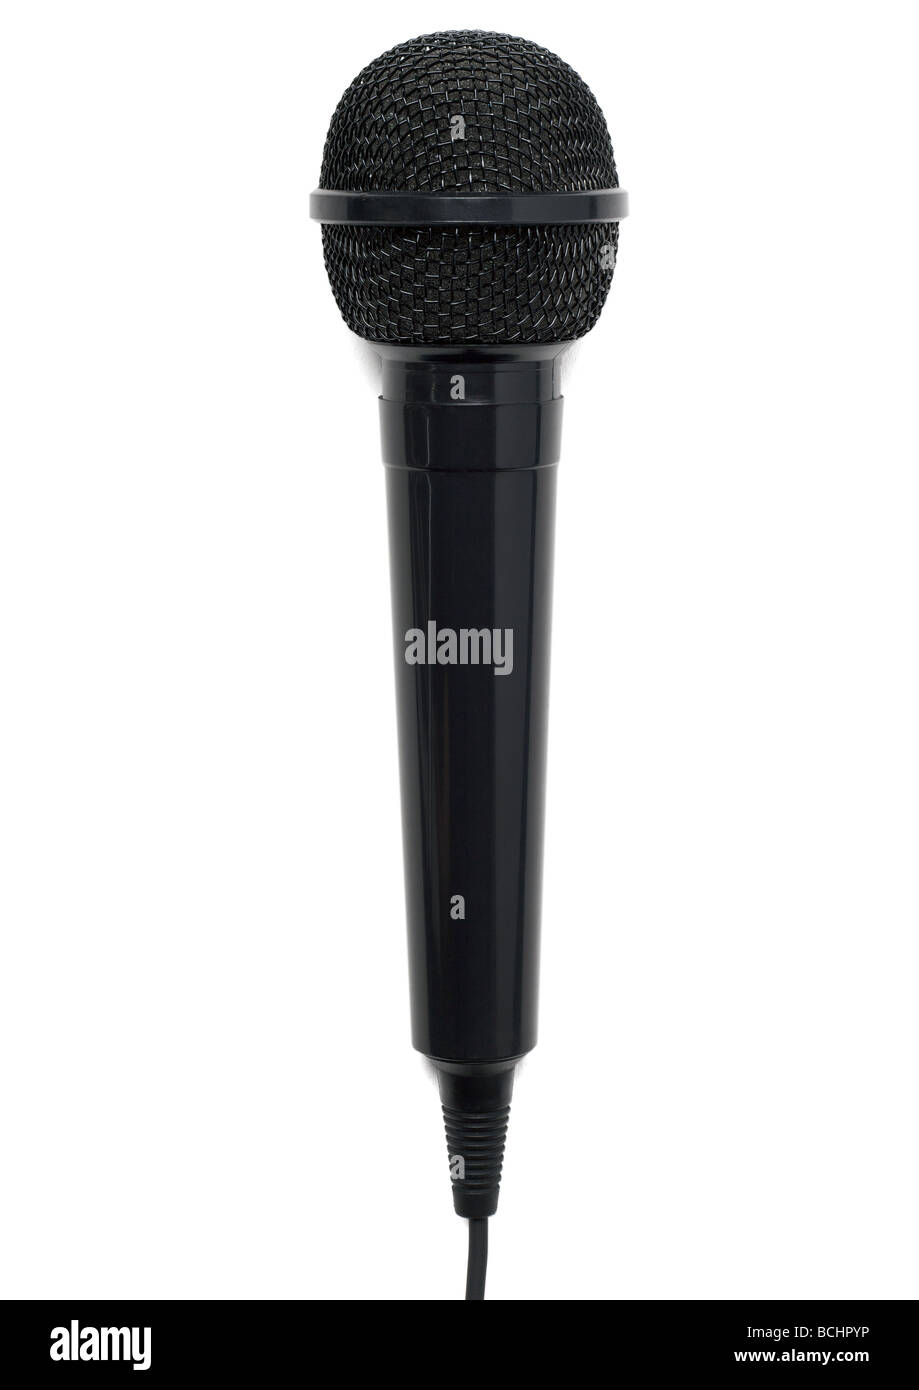 Microphone on white background - Stock Image